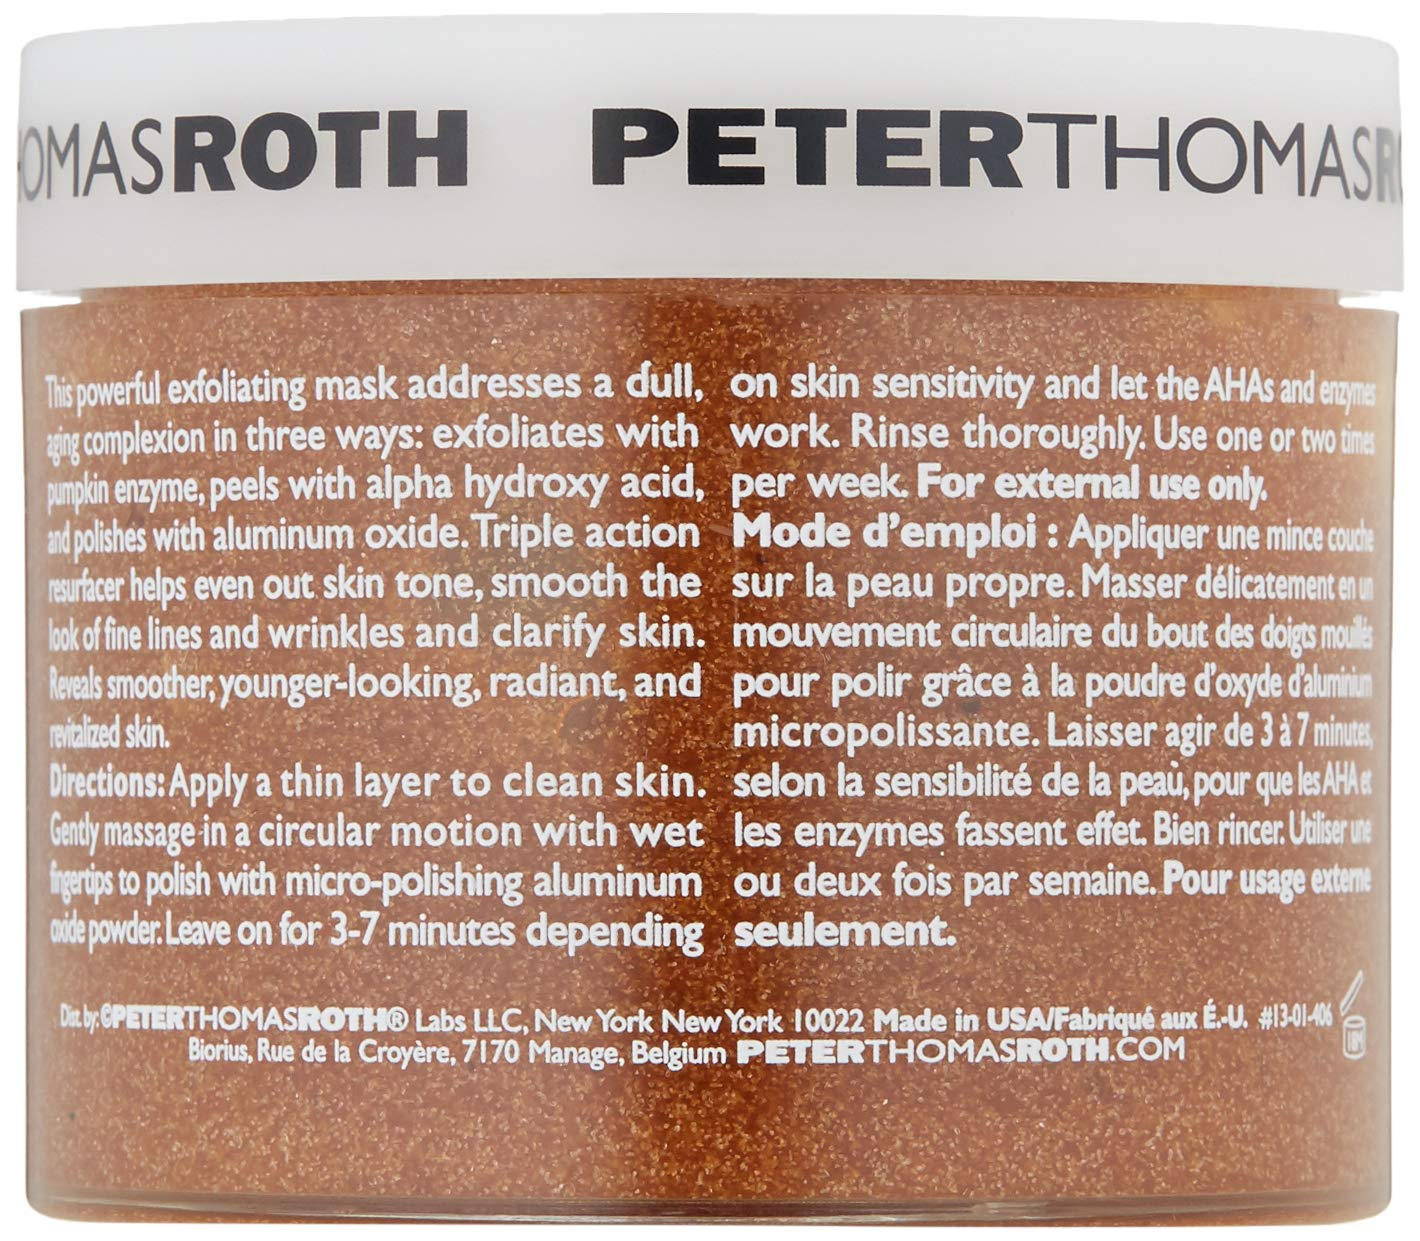 Peter Thomas Roth Pumpkin Enzyme Mask, 5 fl. oz. by Peter Thomas Roth (Image #6)